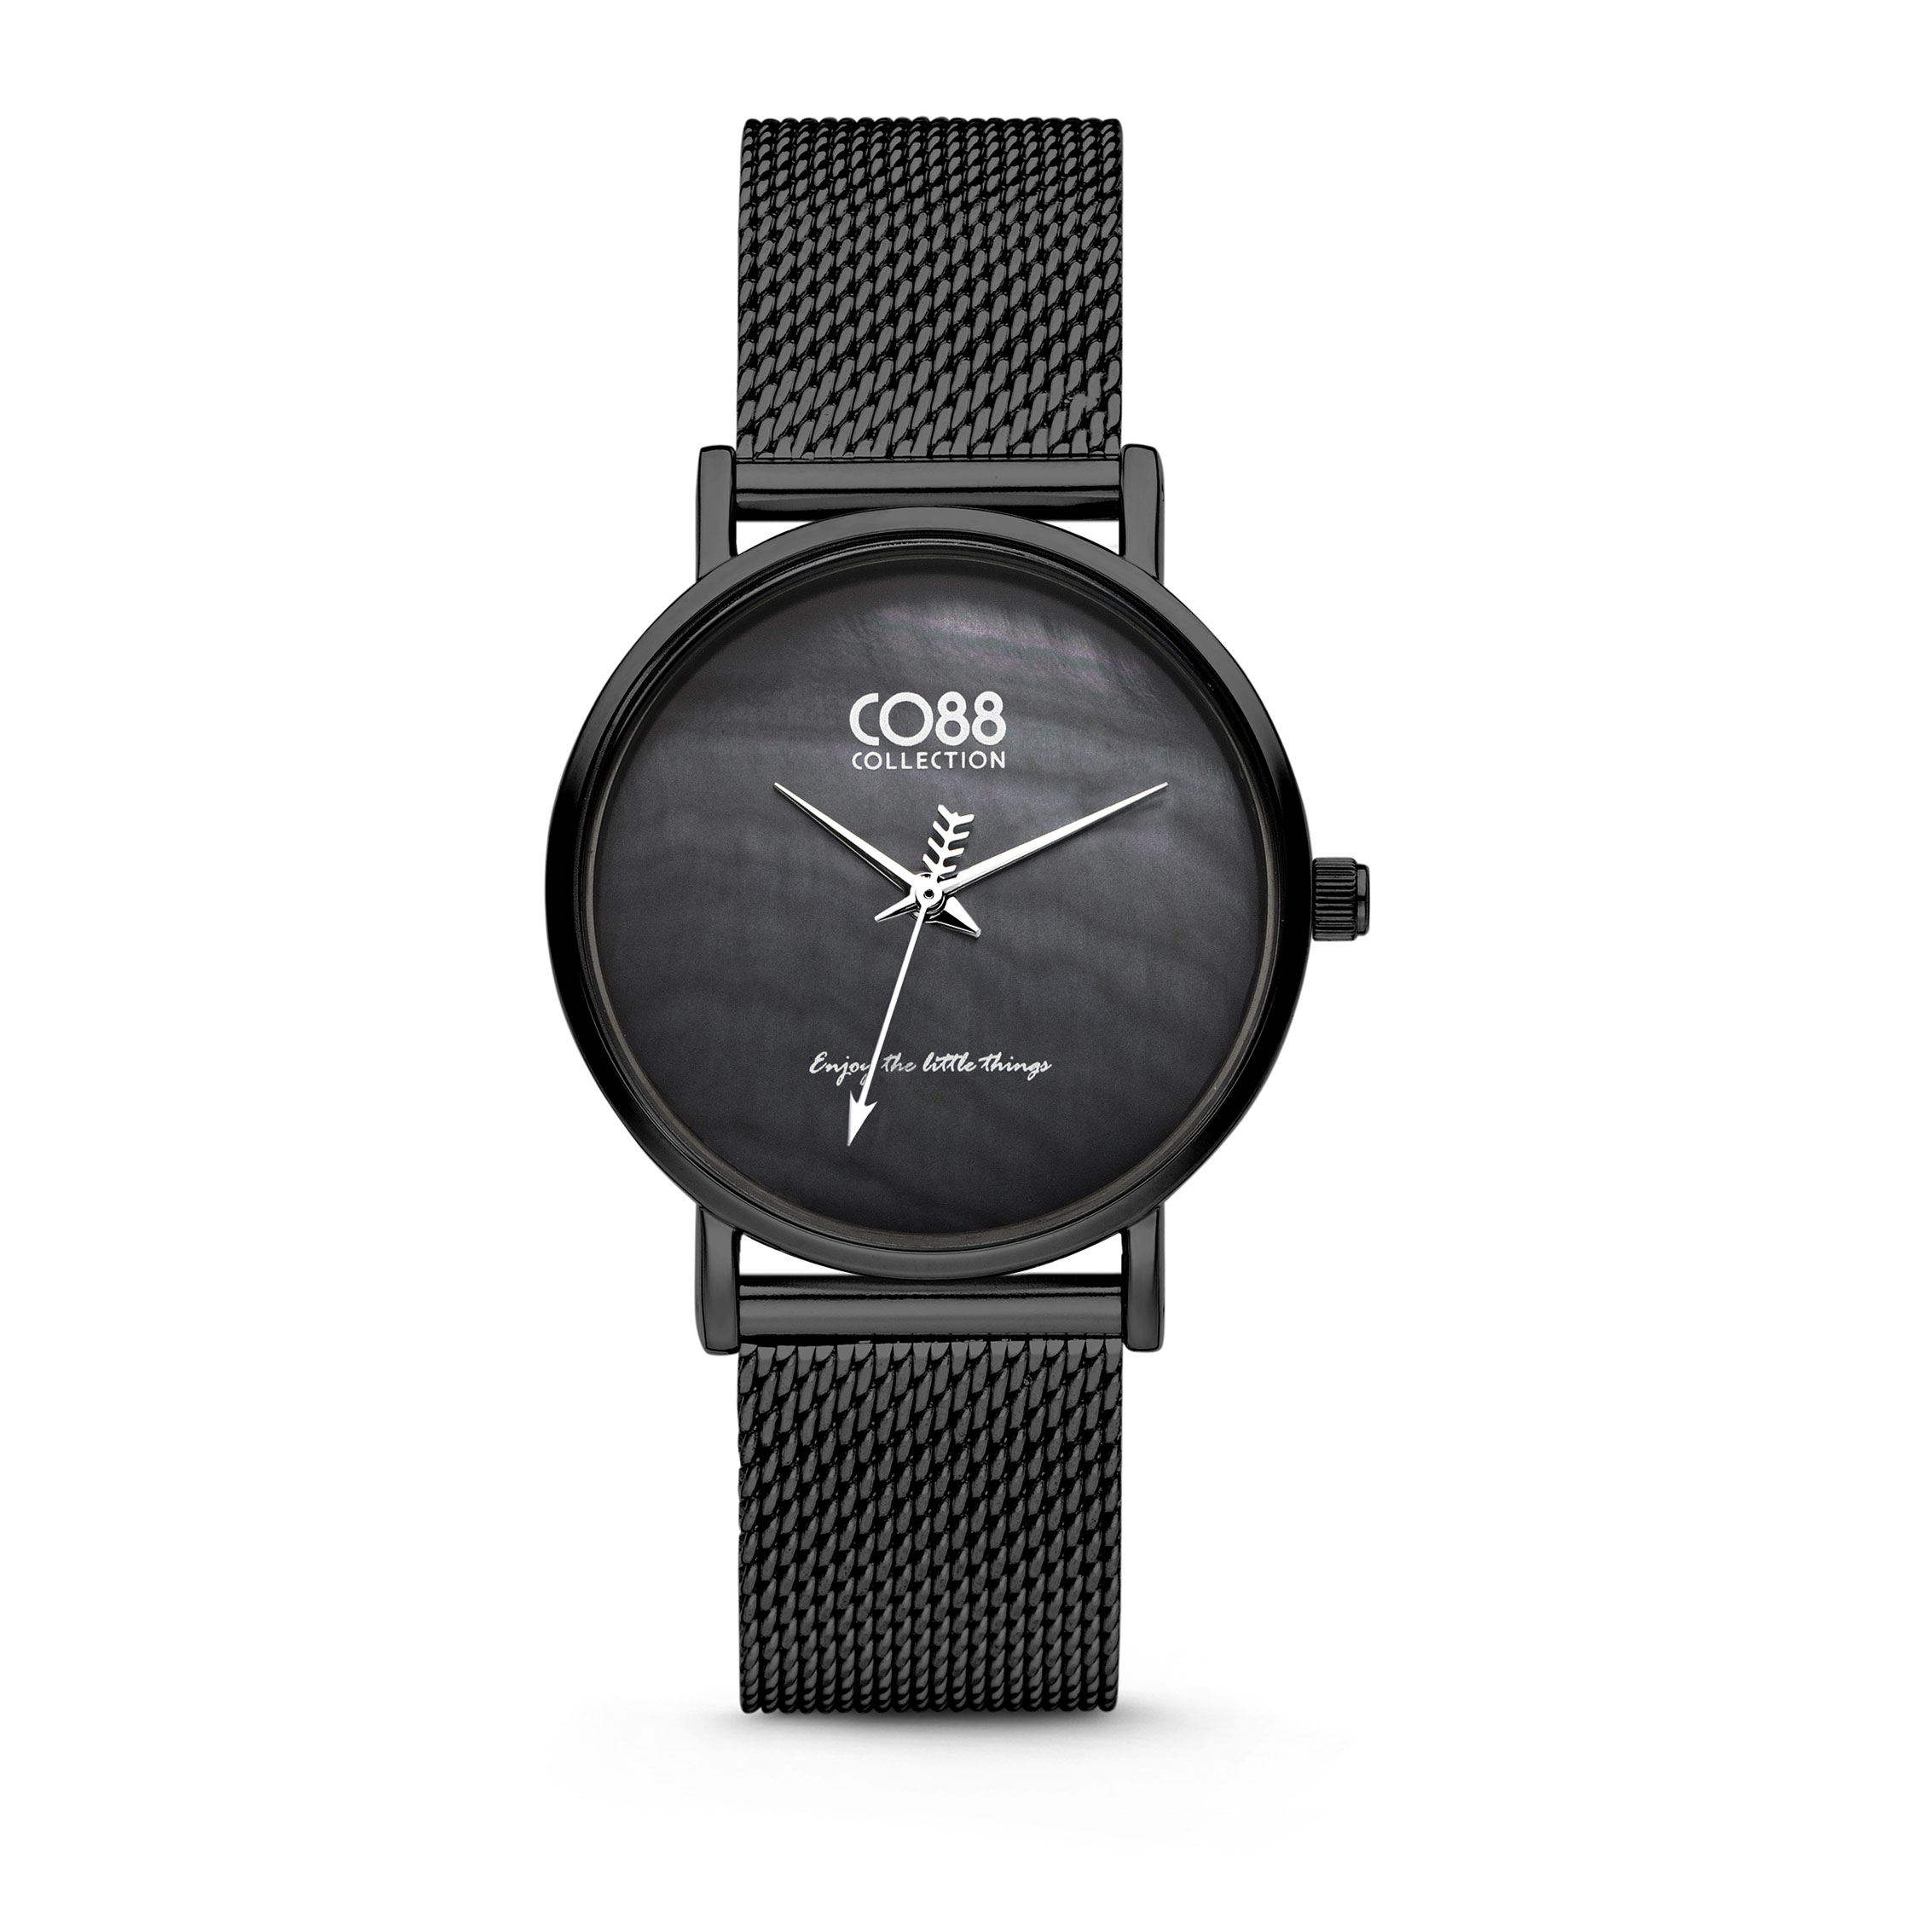 CO88 WATCHES